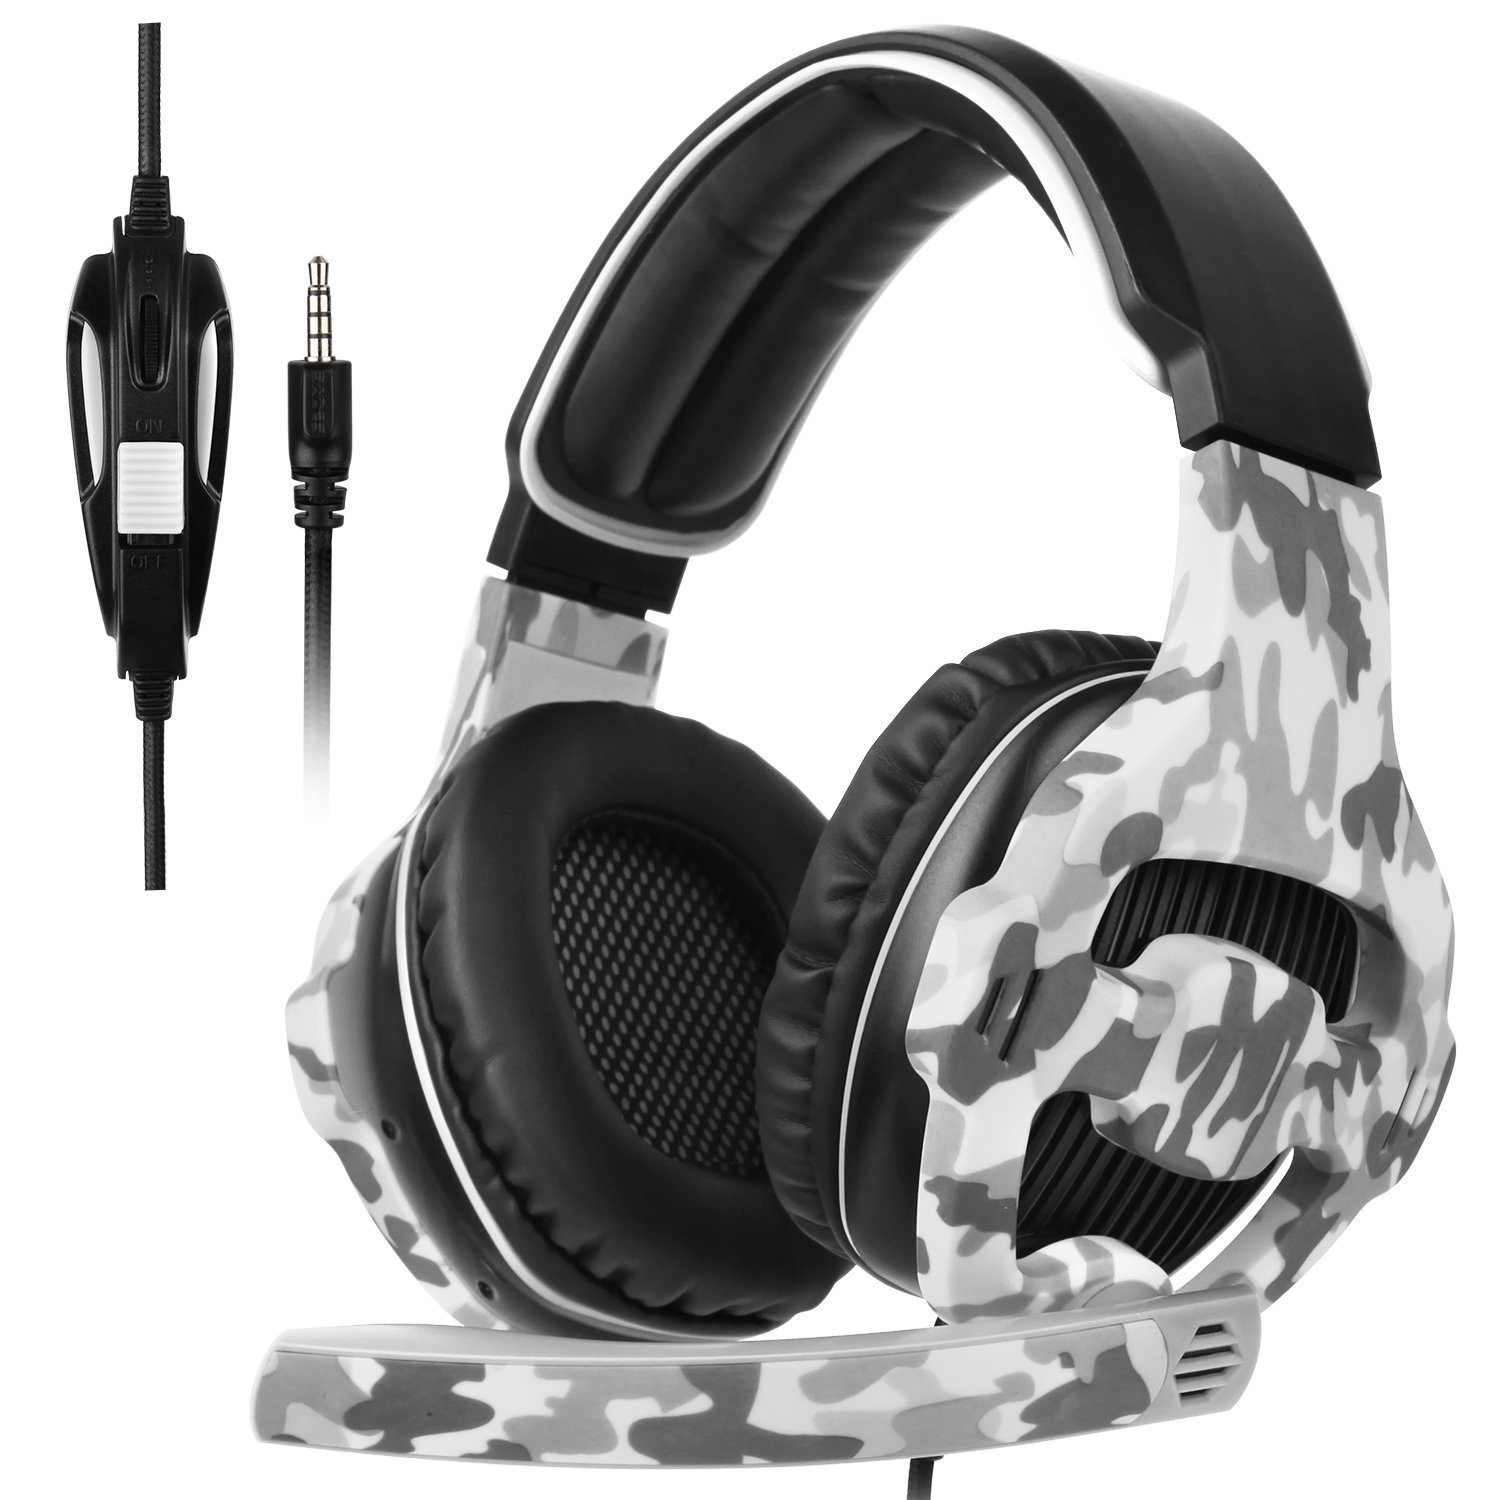 PS4 Gaming Headset, SADES SA810Plus Stereo Headphones with Mic for PC Notebooks New Xbox One